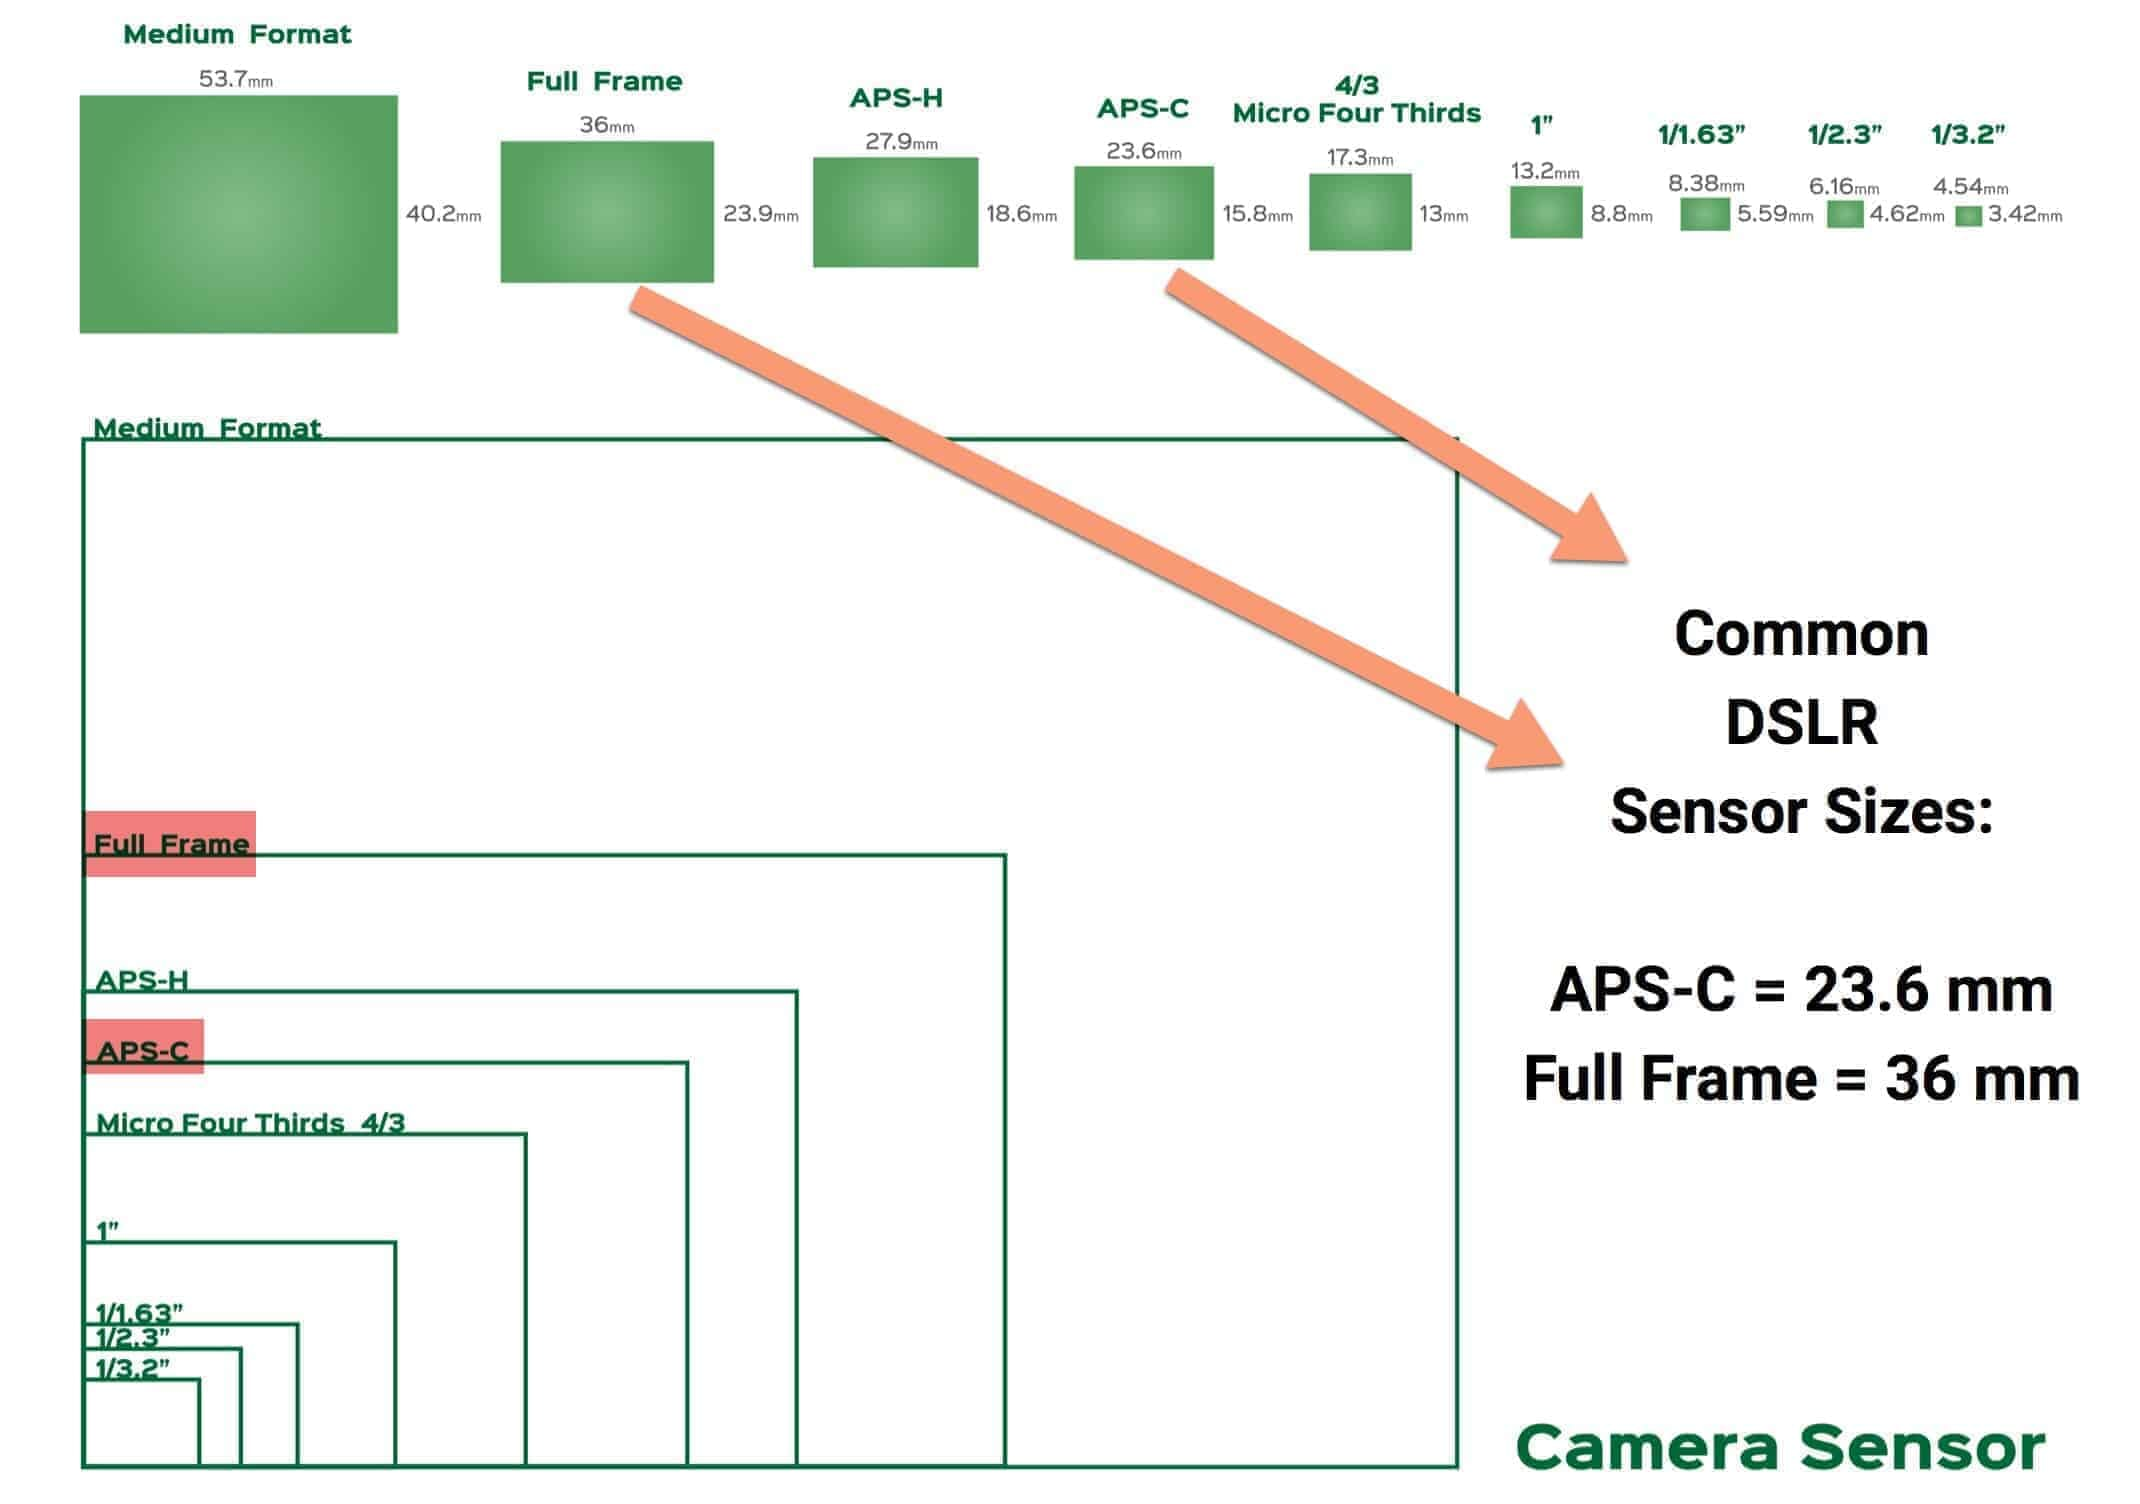 Camera Sensor Sizes highlighting the Best Seller DSLR Sensor Sizes.